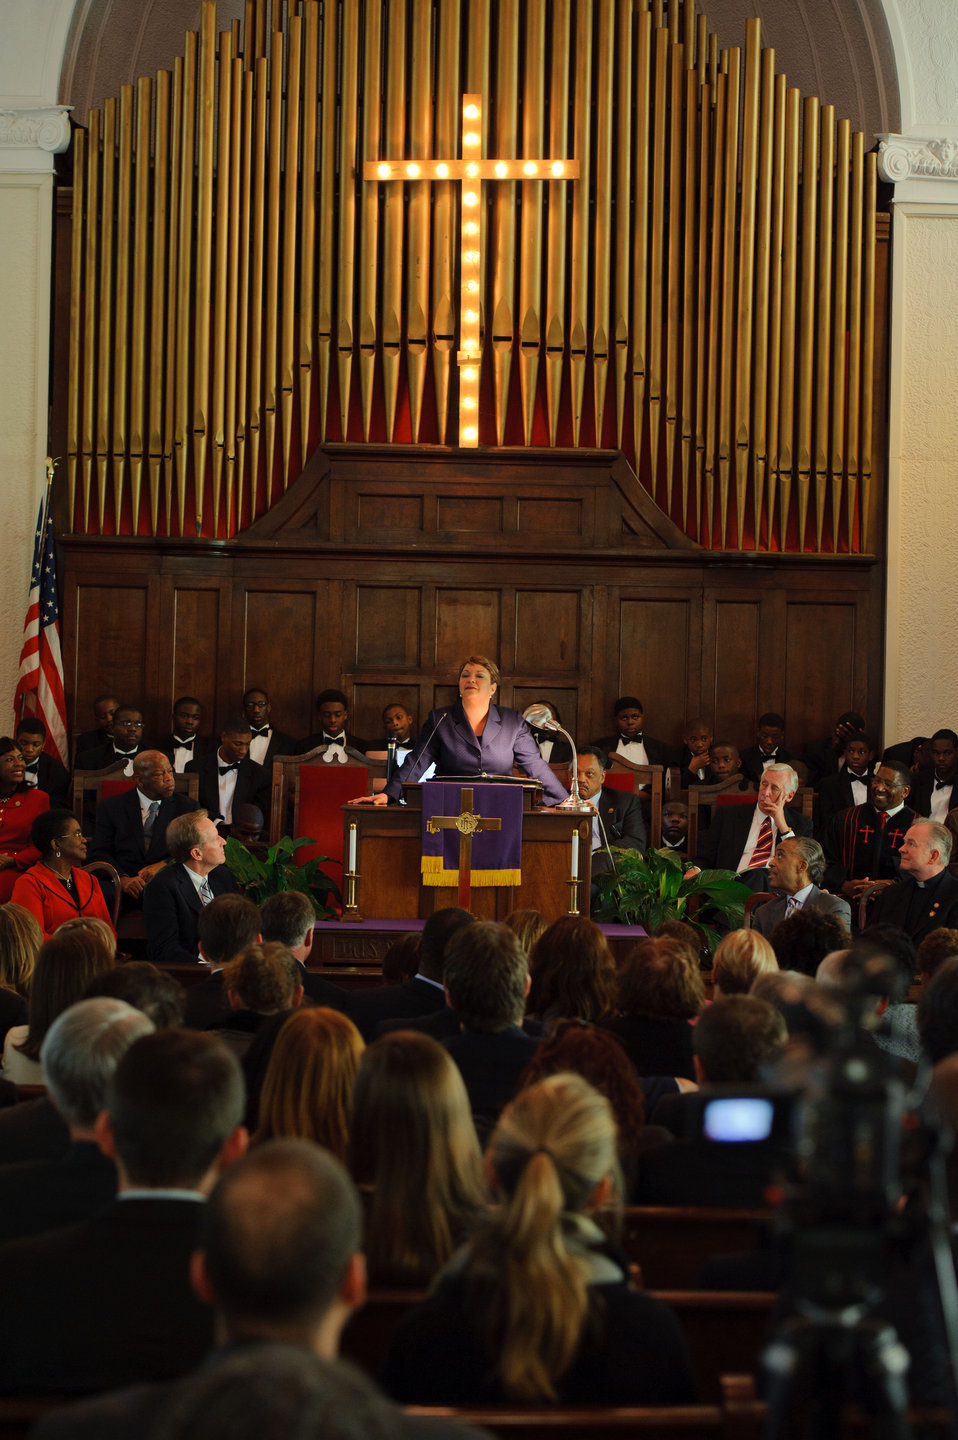 March 4, 2012, EPA Administrator speaks to congregation at historic Brown Chapel AME